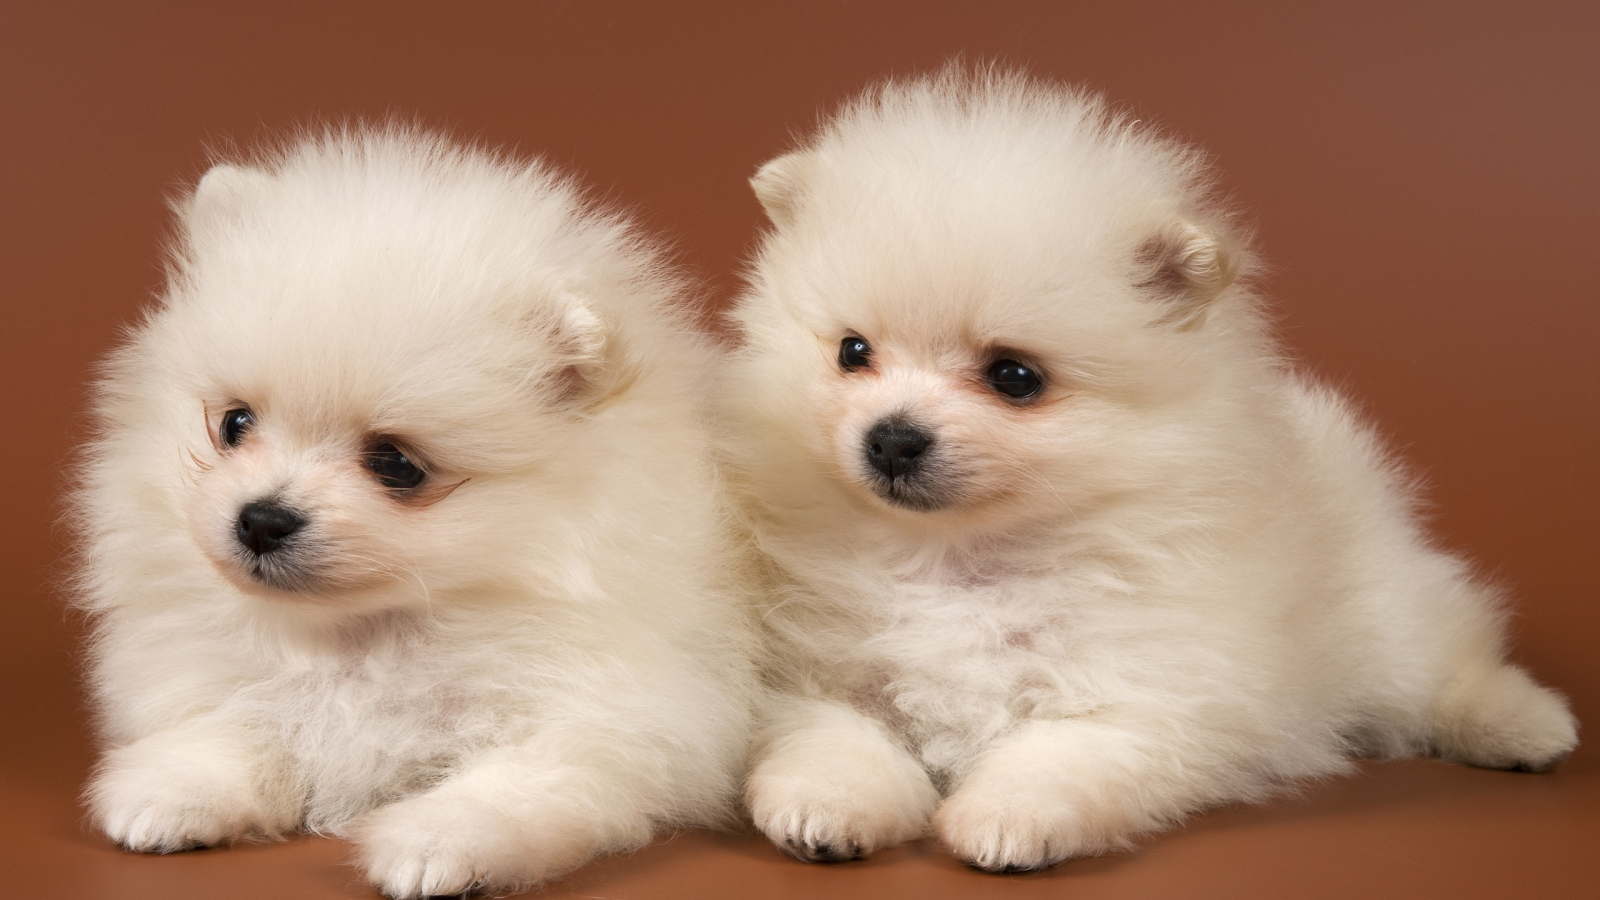 Free Download Baby Puppies Dog Very Cute Wallpaper 5575 Wallpaper Hdwallsizecom 2560x1600 For Your Desktop Mobile Tablet Explore 72 Baby Dog Wallpaper Cute Puppies Wallpapers Cute Cats And Dogs